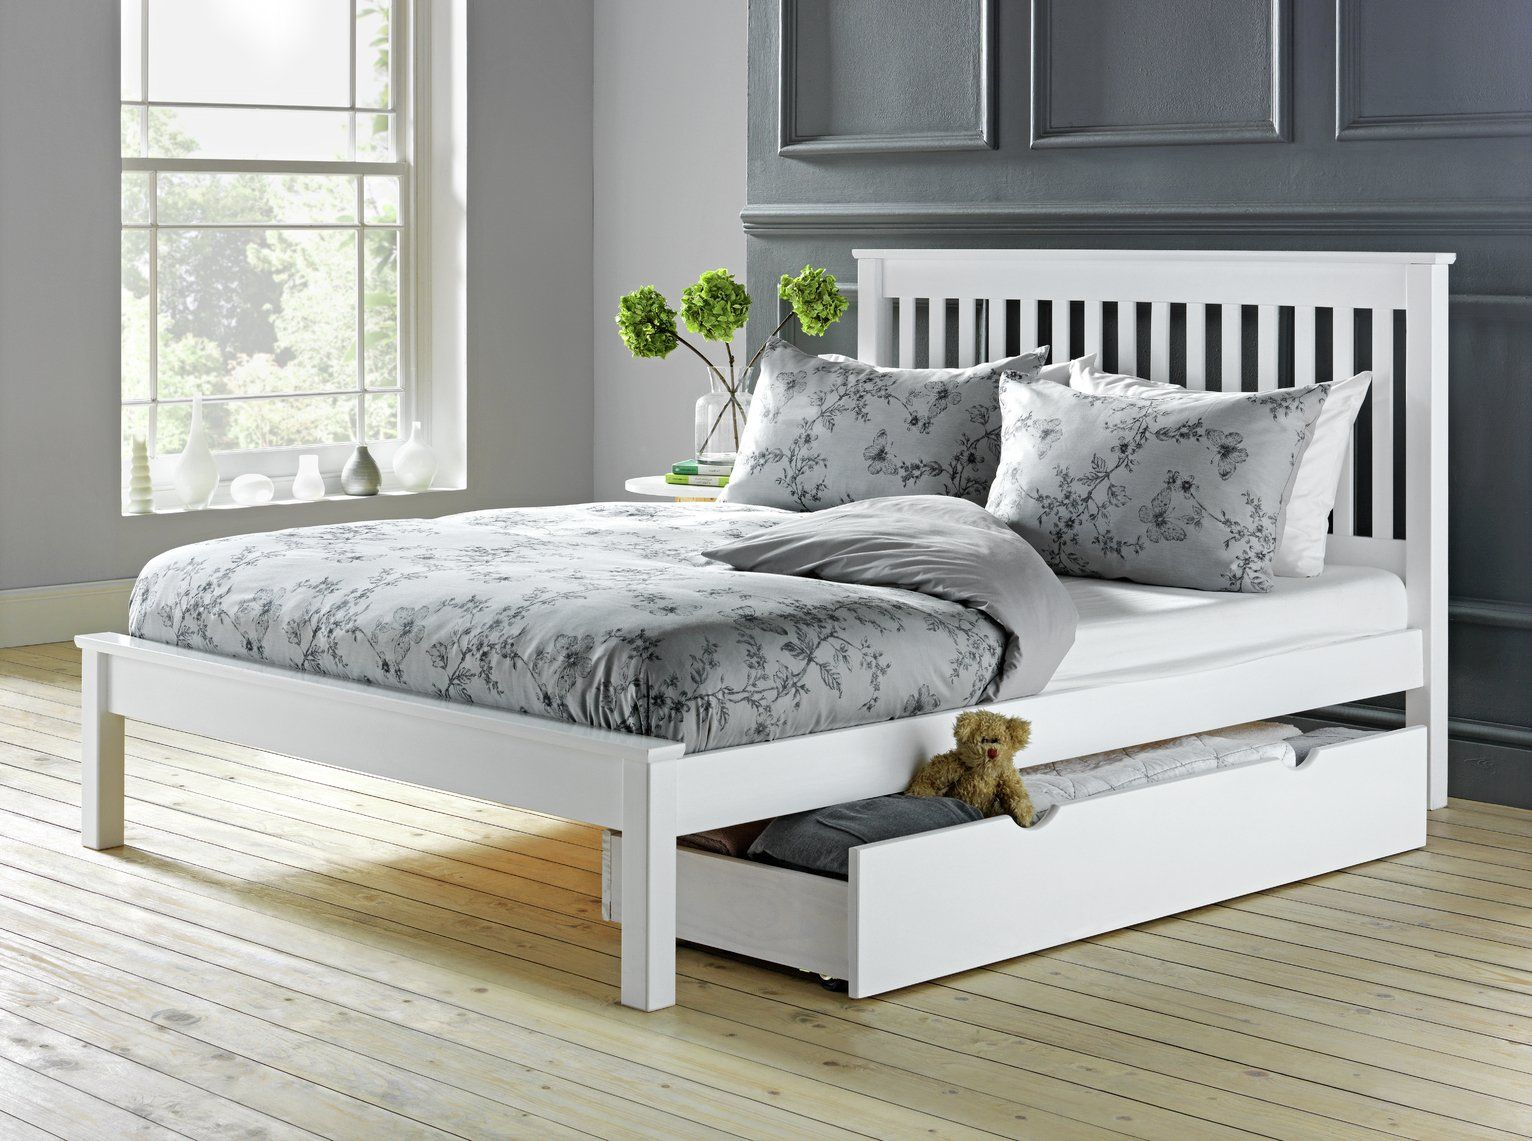 Argos Home Aspley Small Double Bed Frame White In 2020 Small